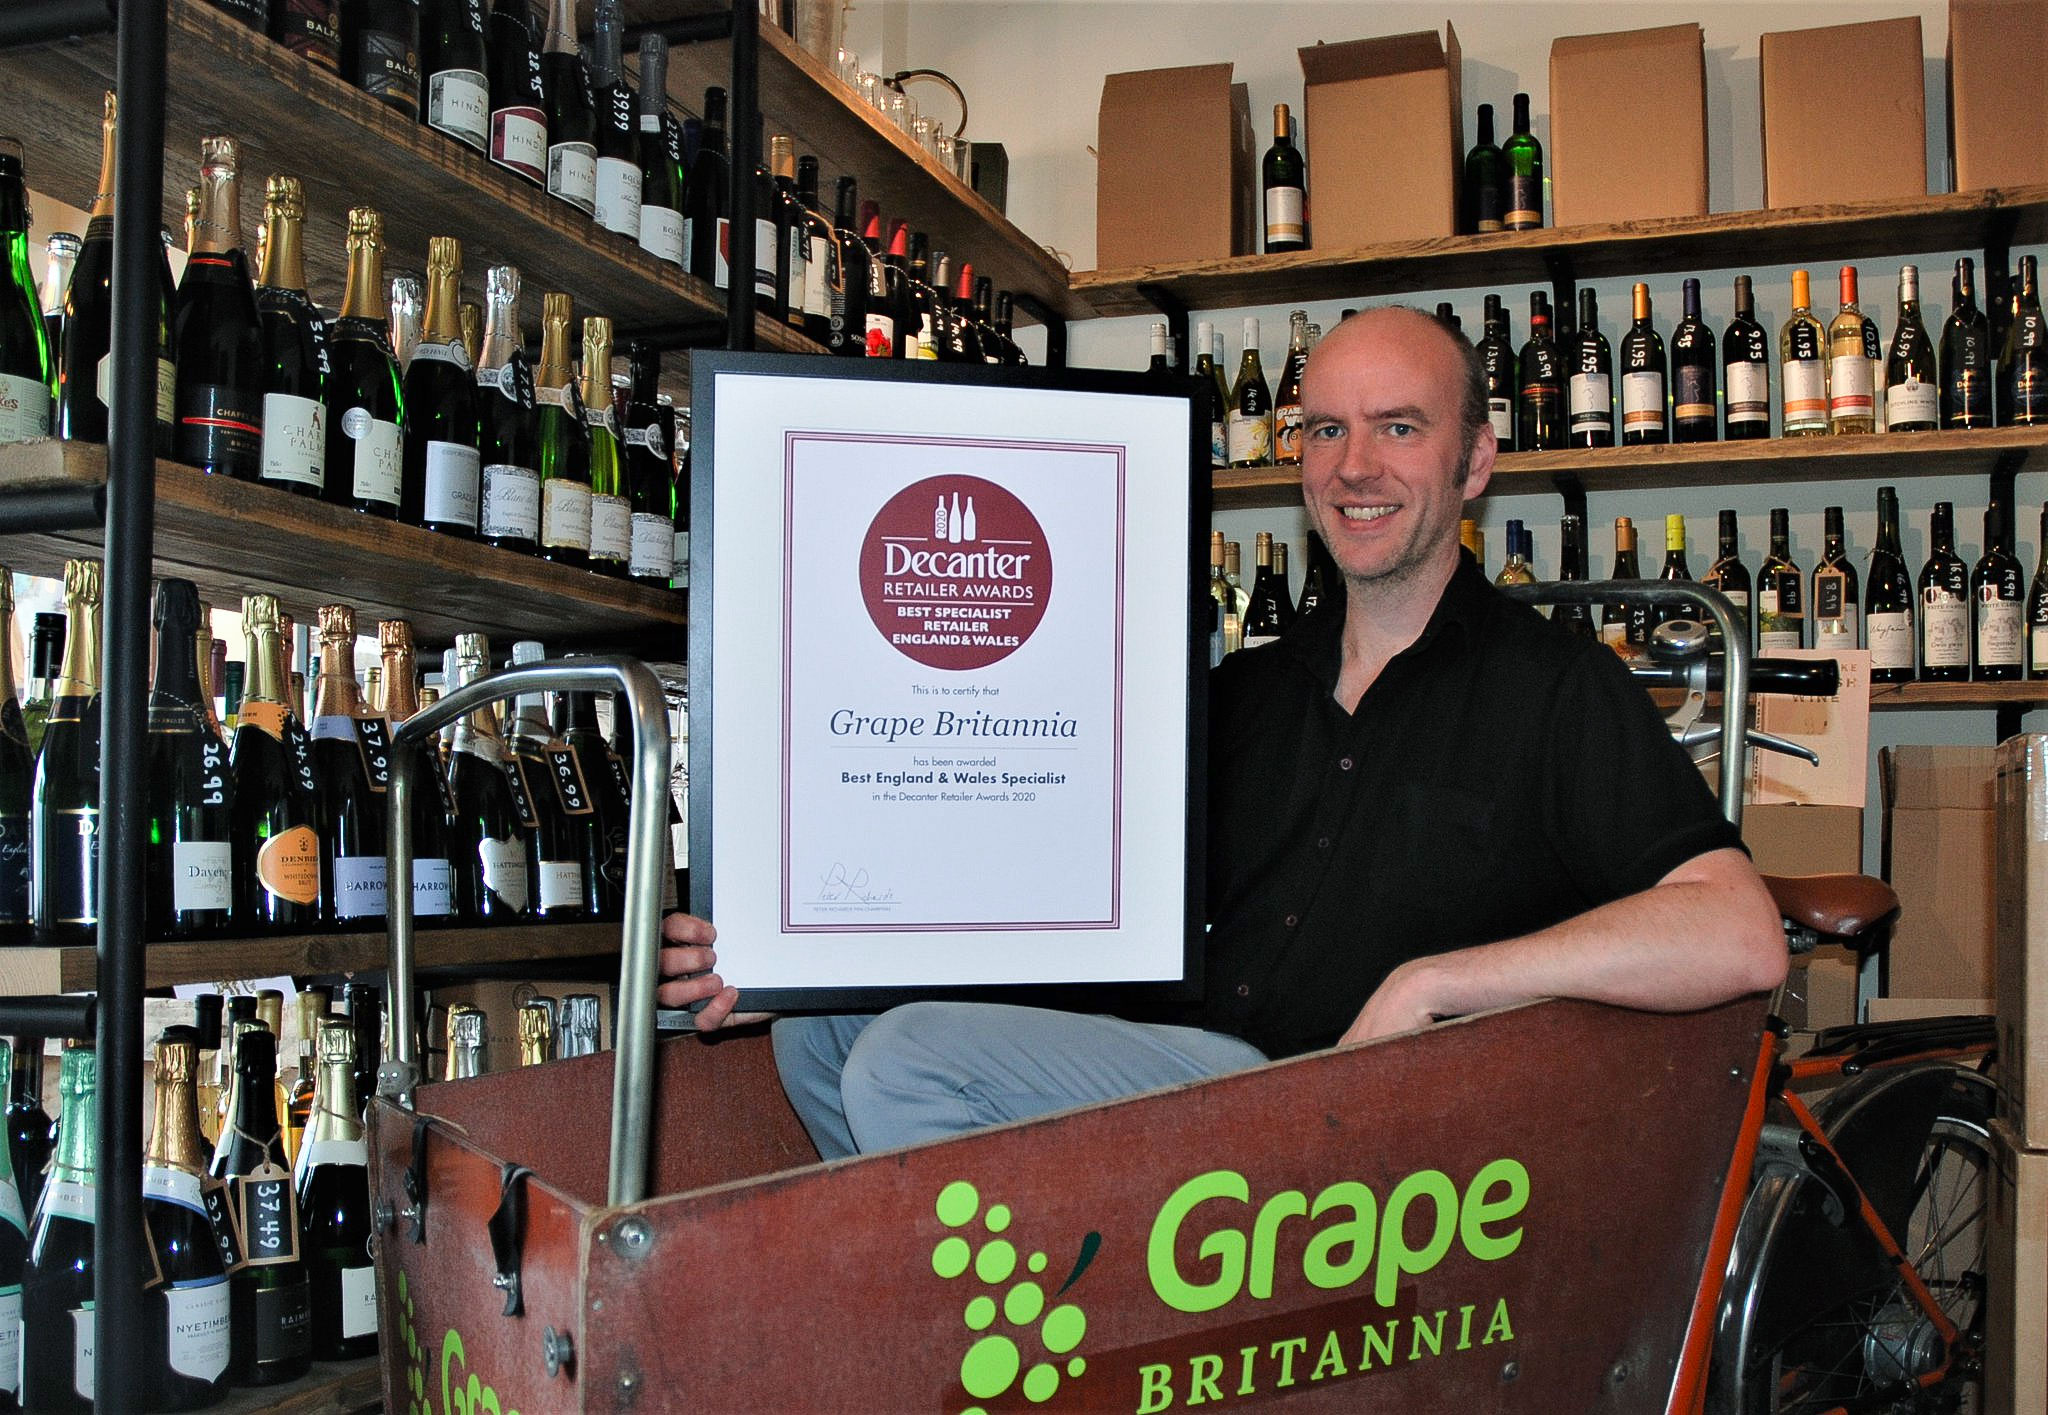 Grape Britannia on winning Decanter Best English & Welsh Wine Specialist